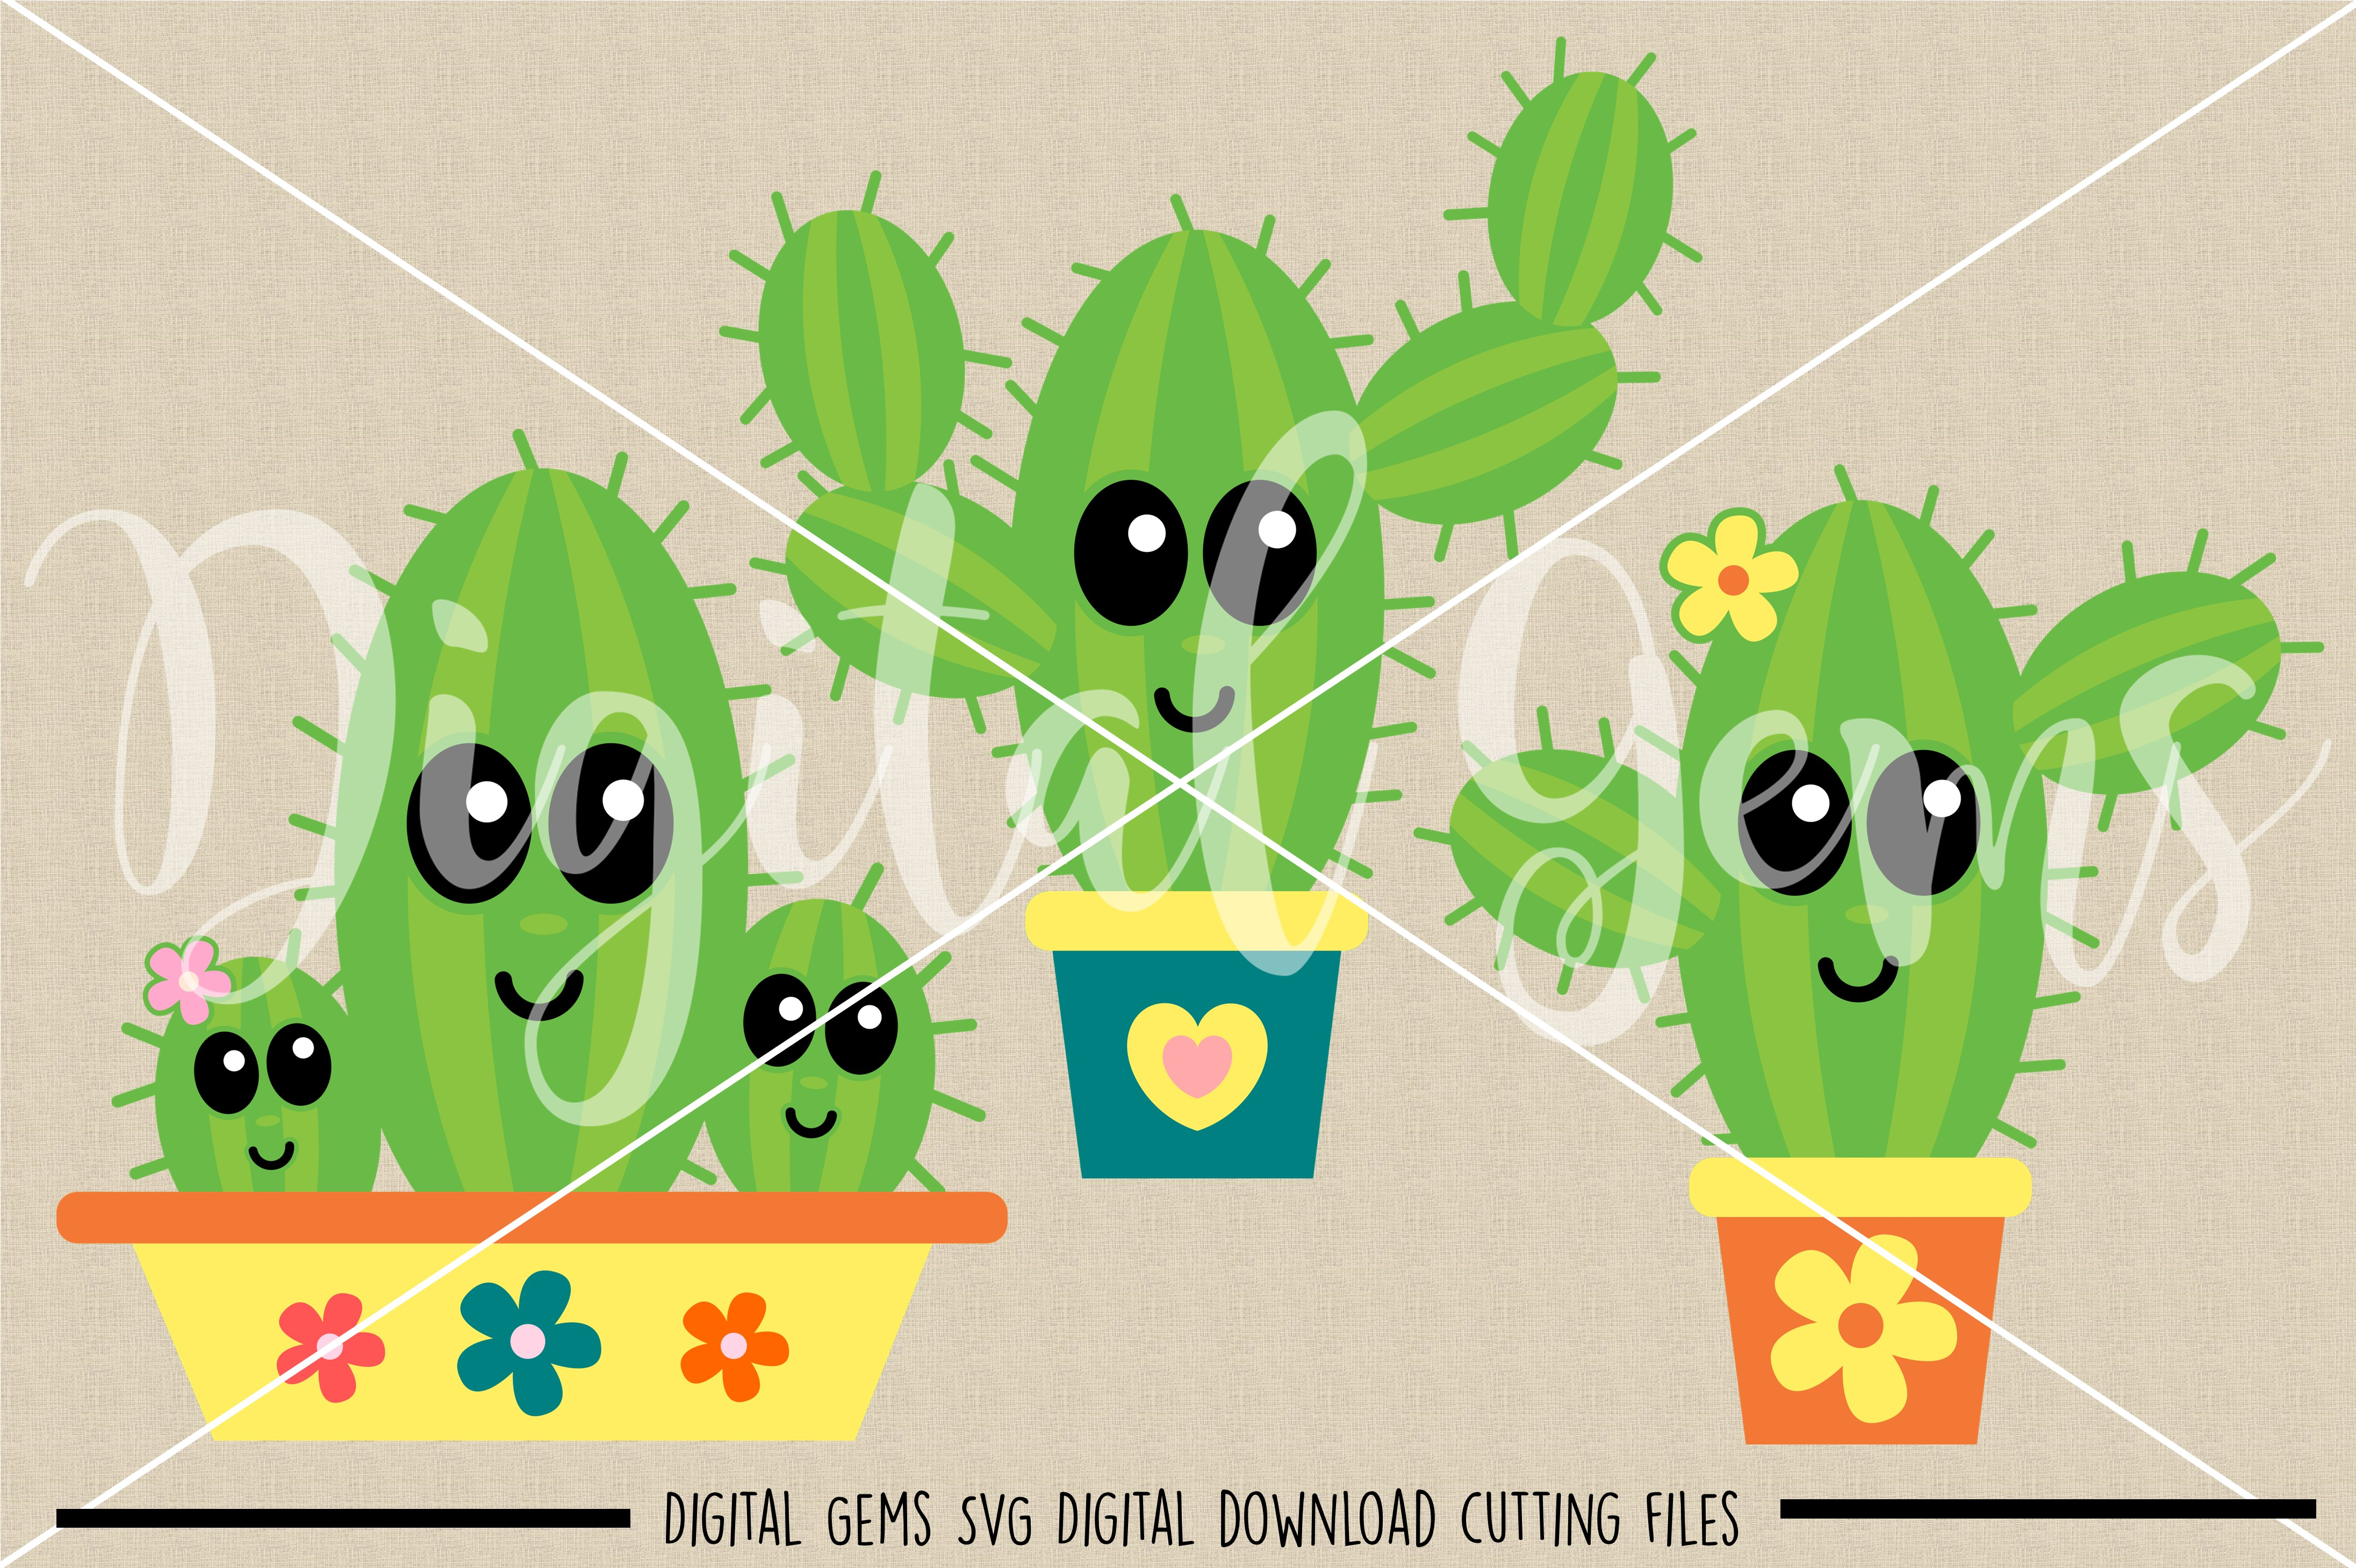 Cactus SVG / PNG / EPS / DXF Files example image 5